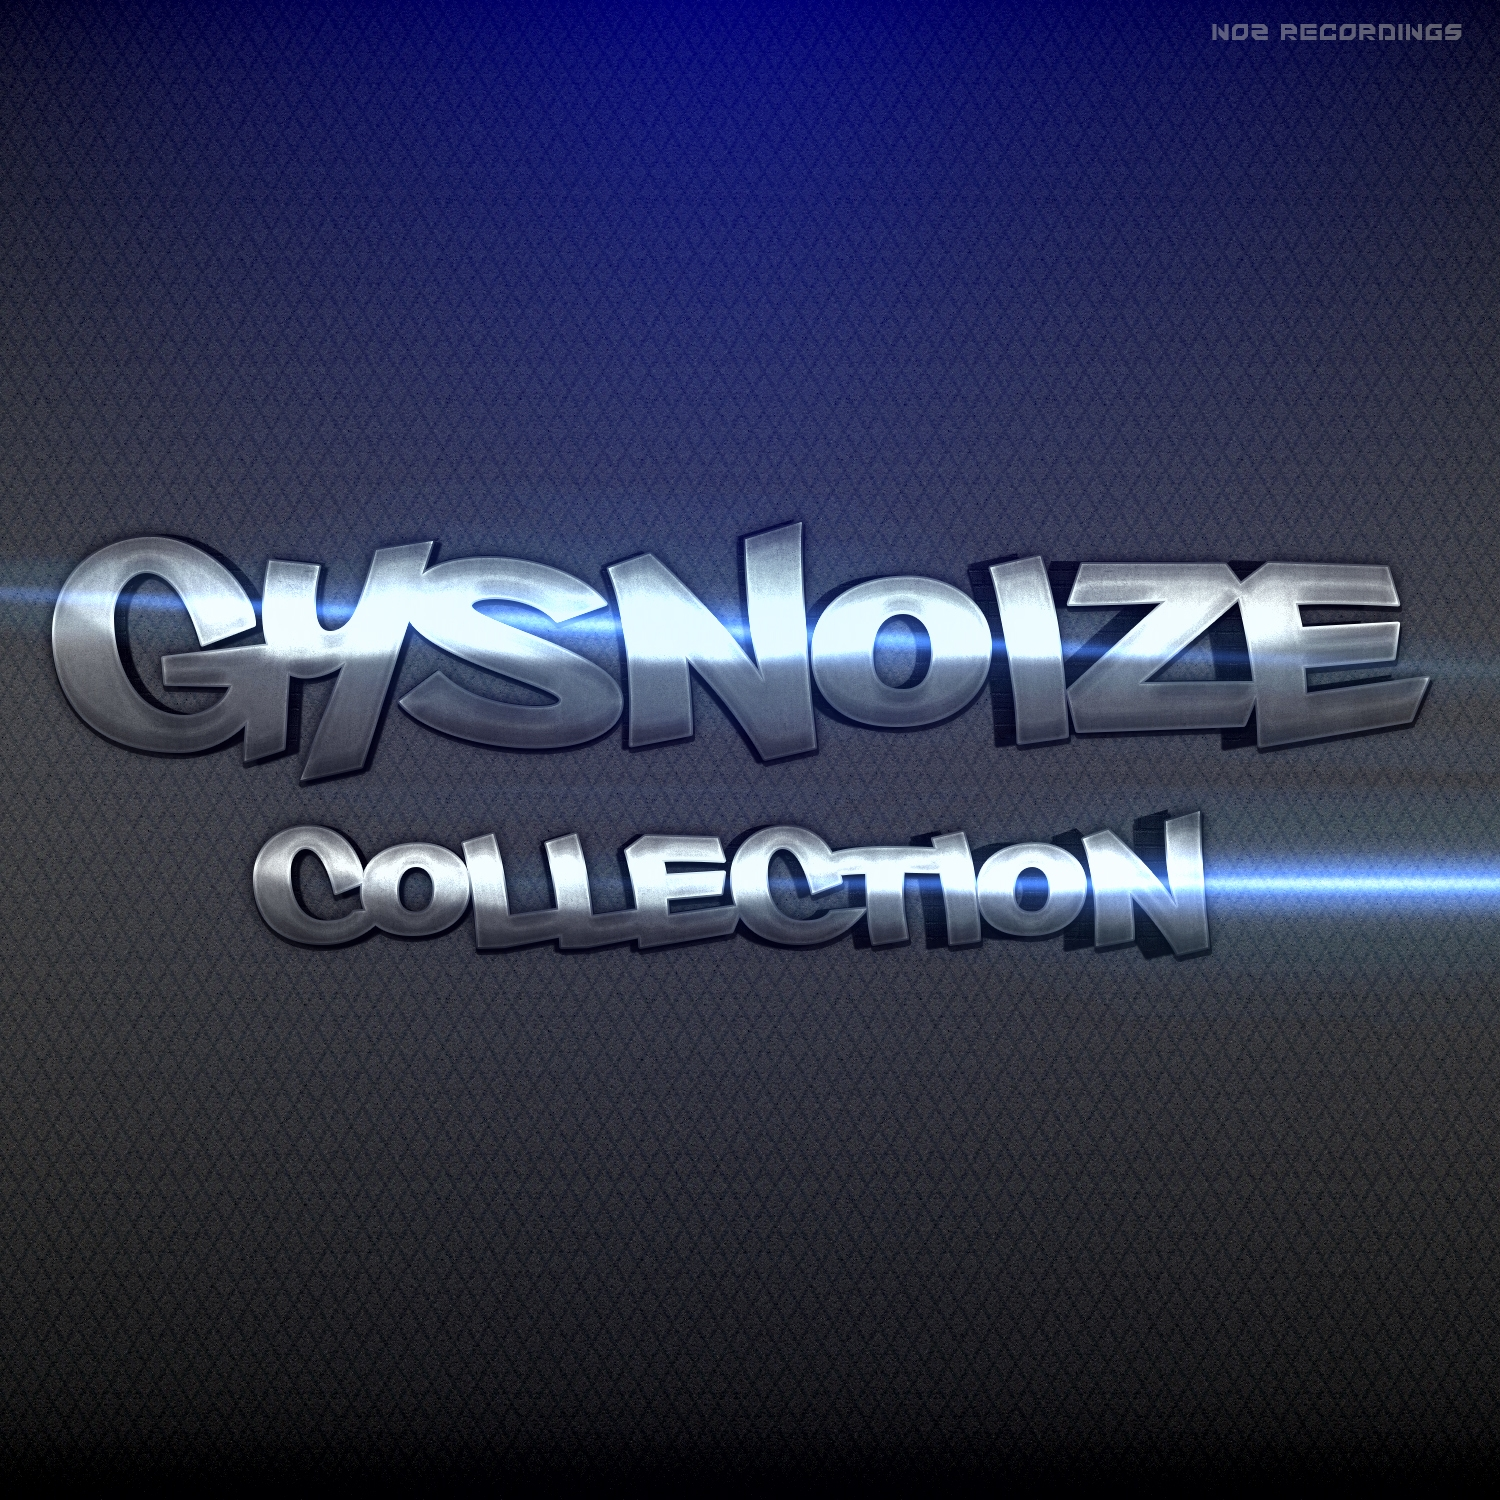 GYSNOIZE - Lost In Space (Original Mix)